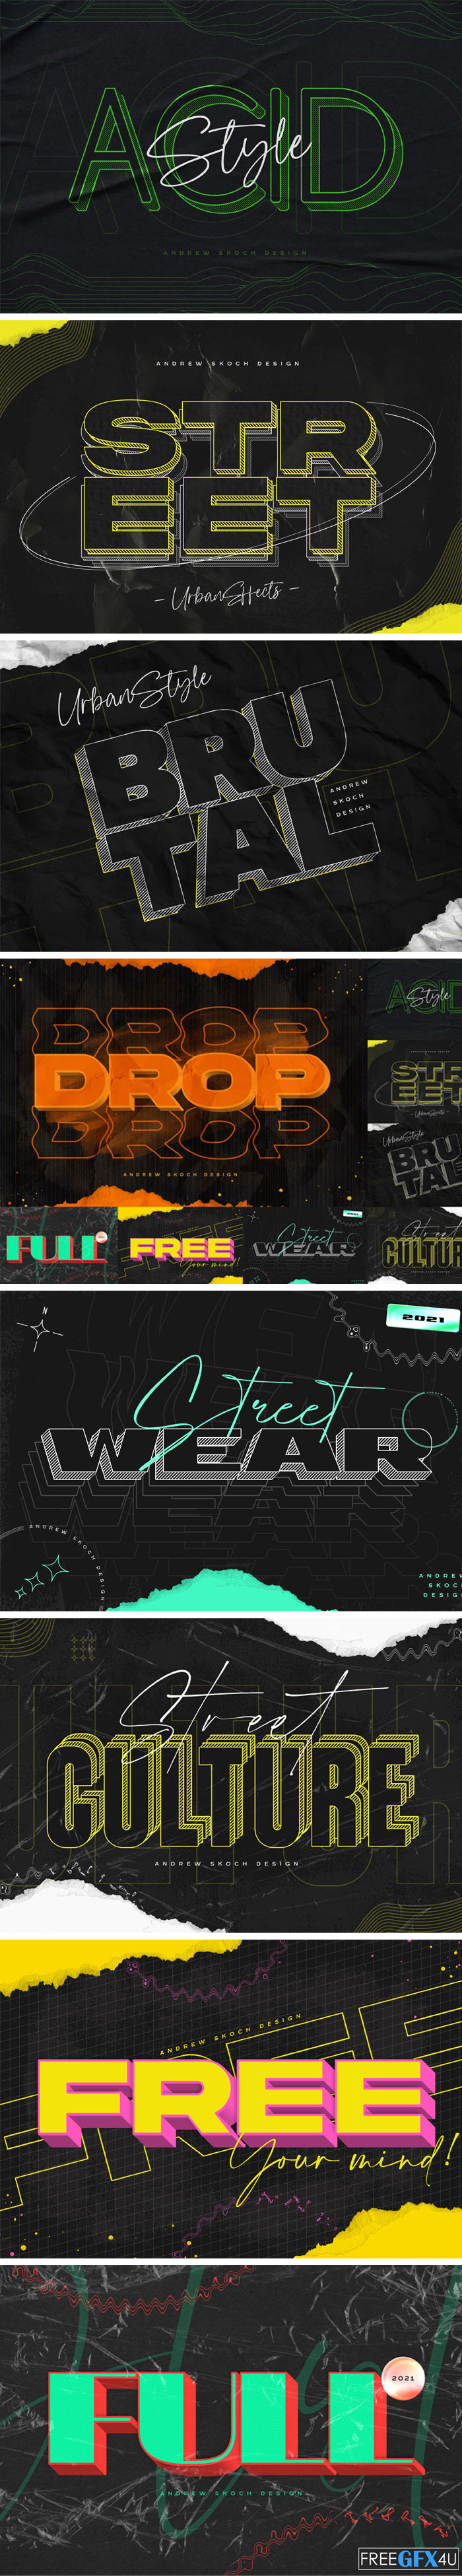 Urban Text Effects